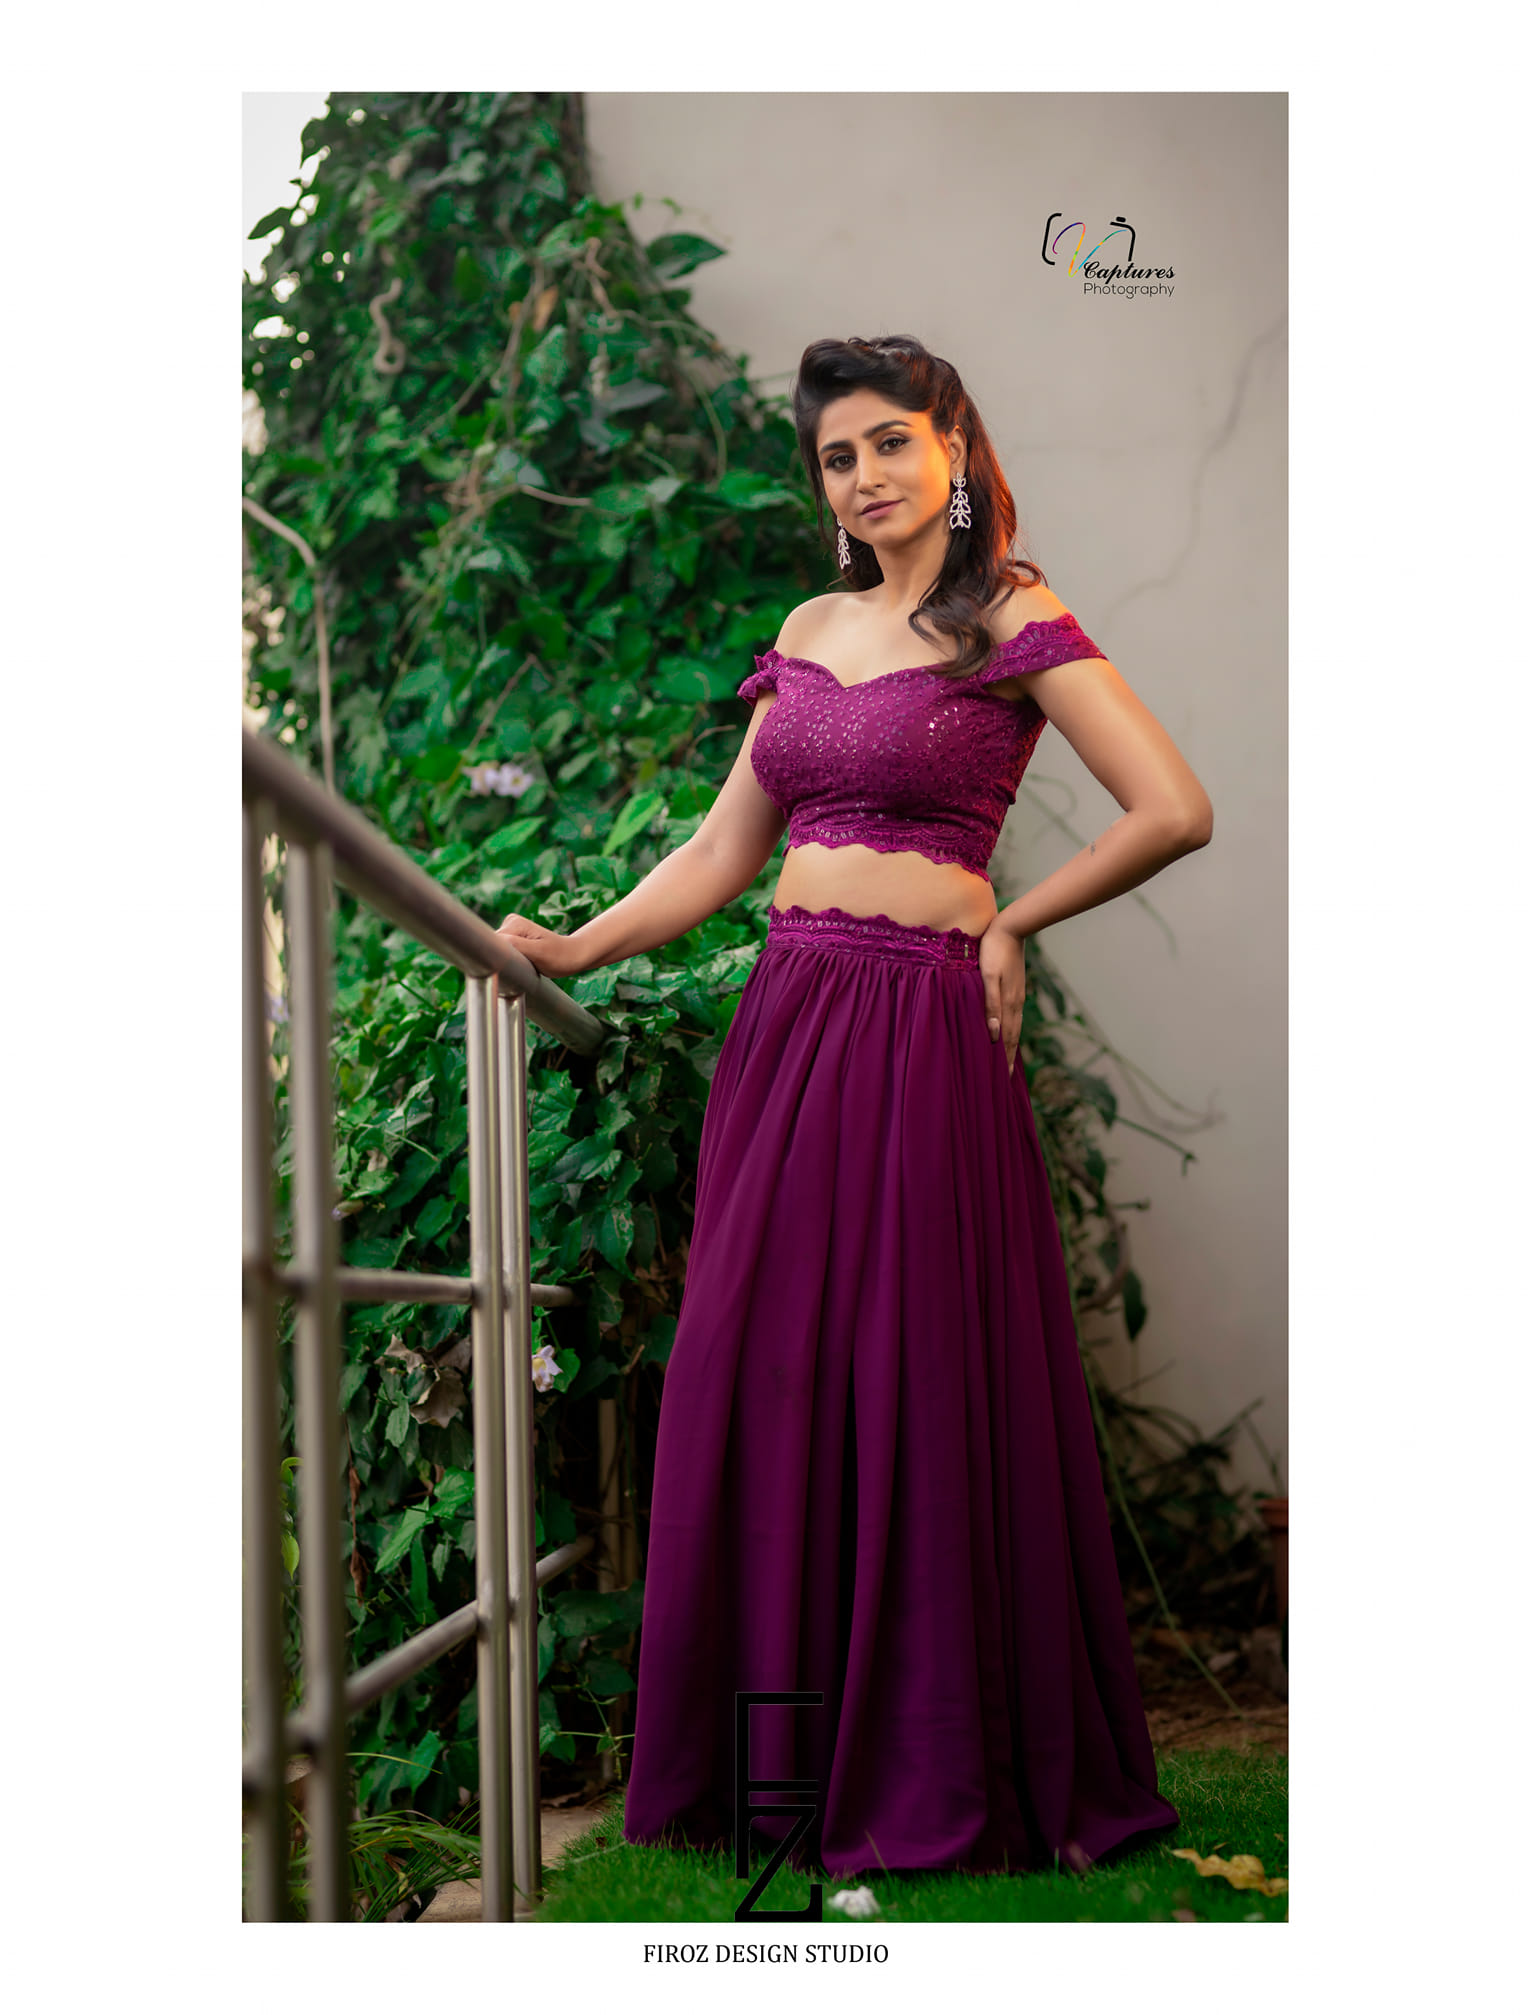 Glamorous Goddess Varshini looked beautiful in 